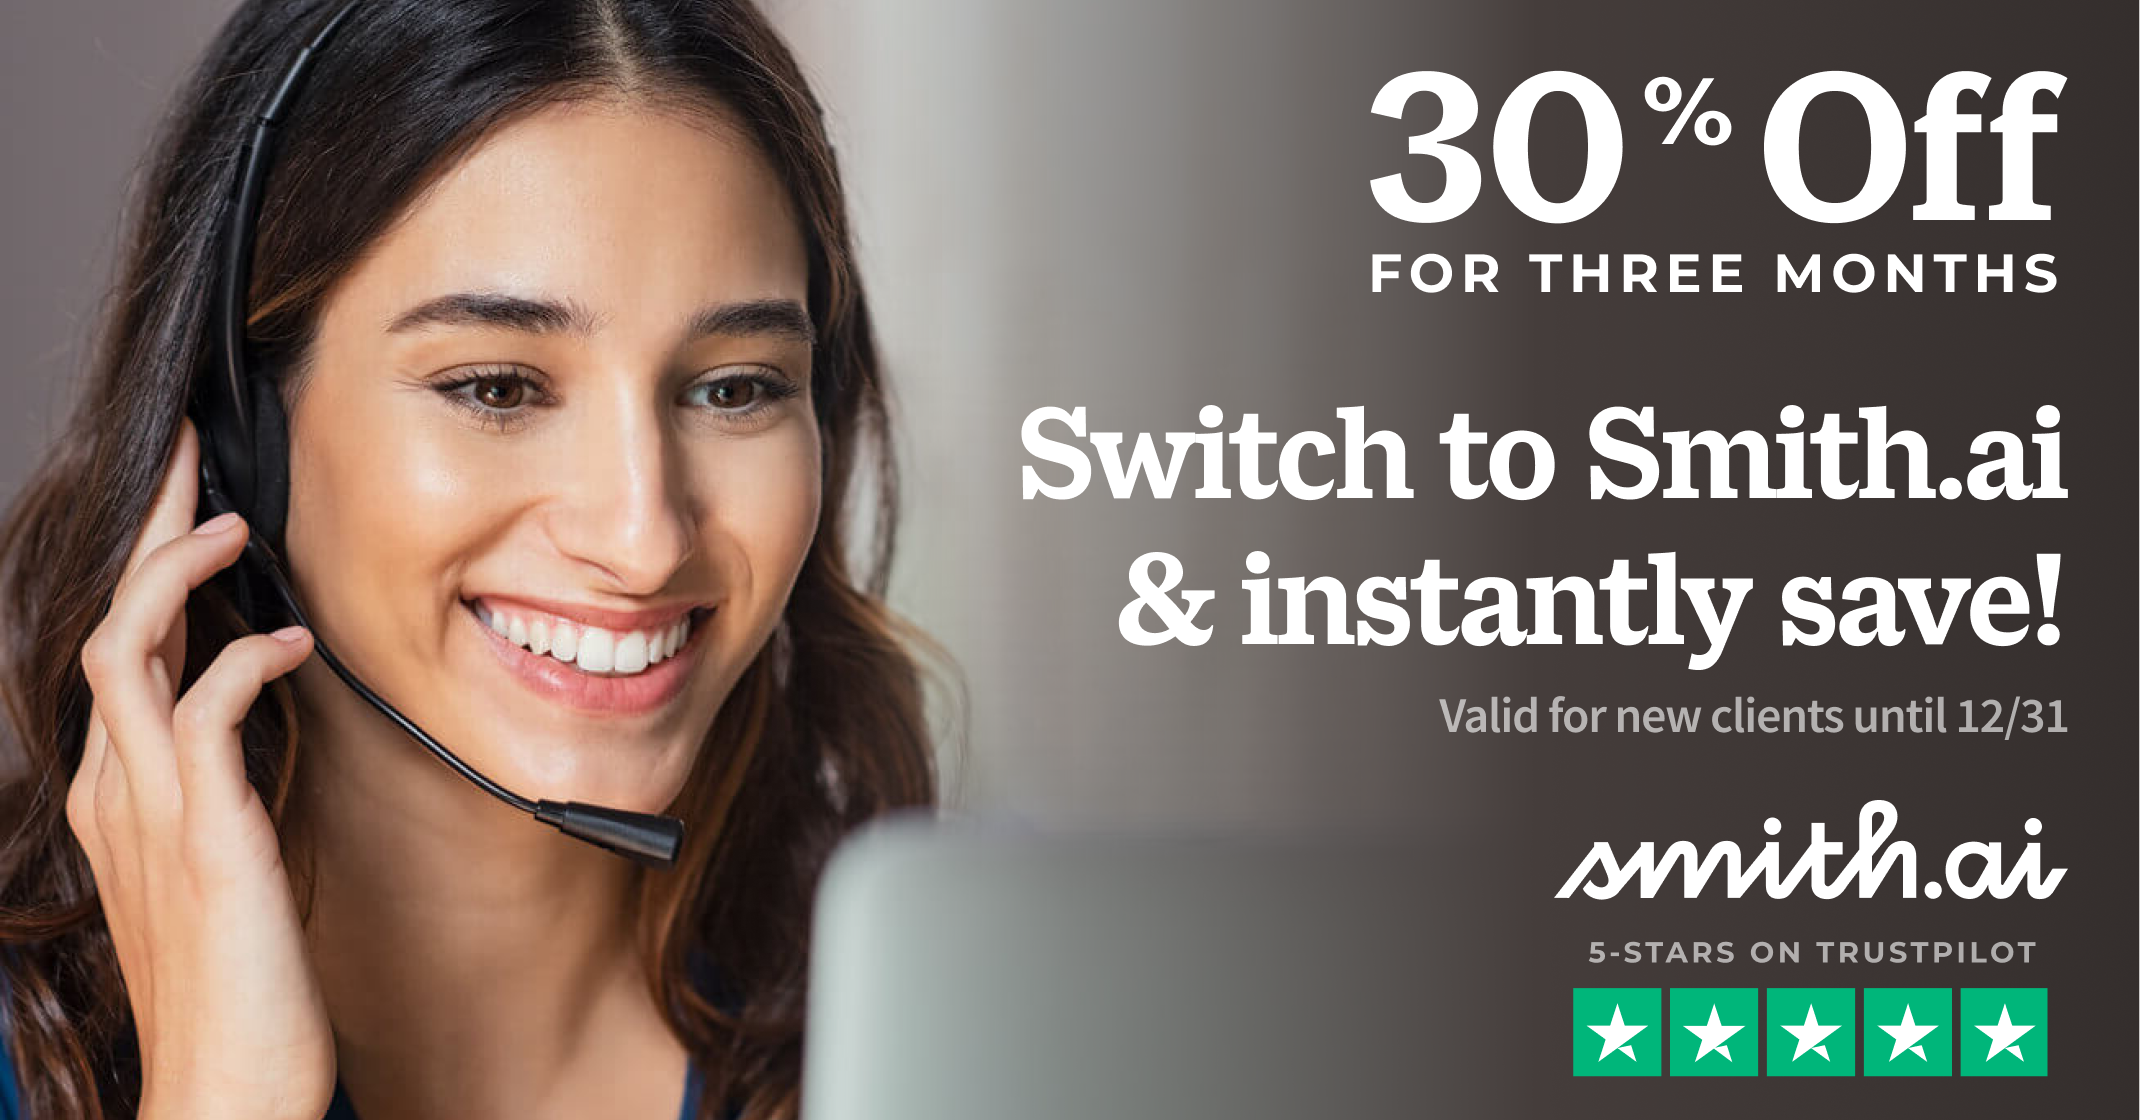 Save 30% for 3 Months When You Switch to Smith.ai!